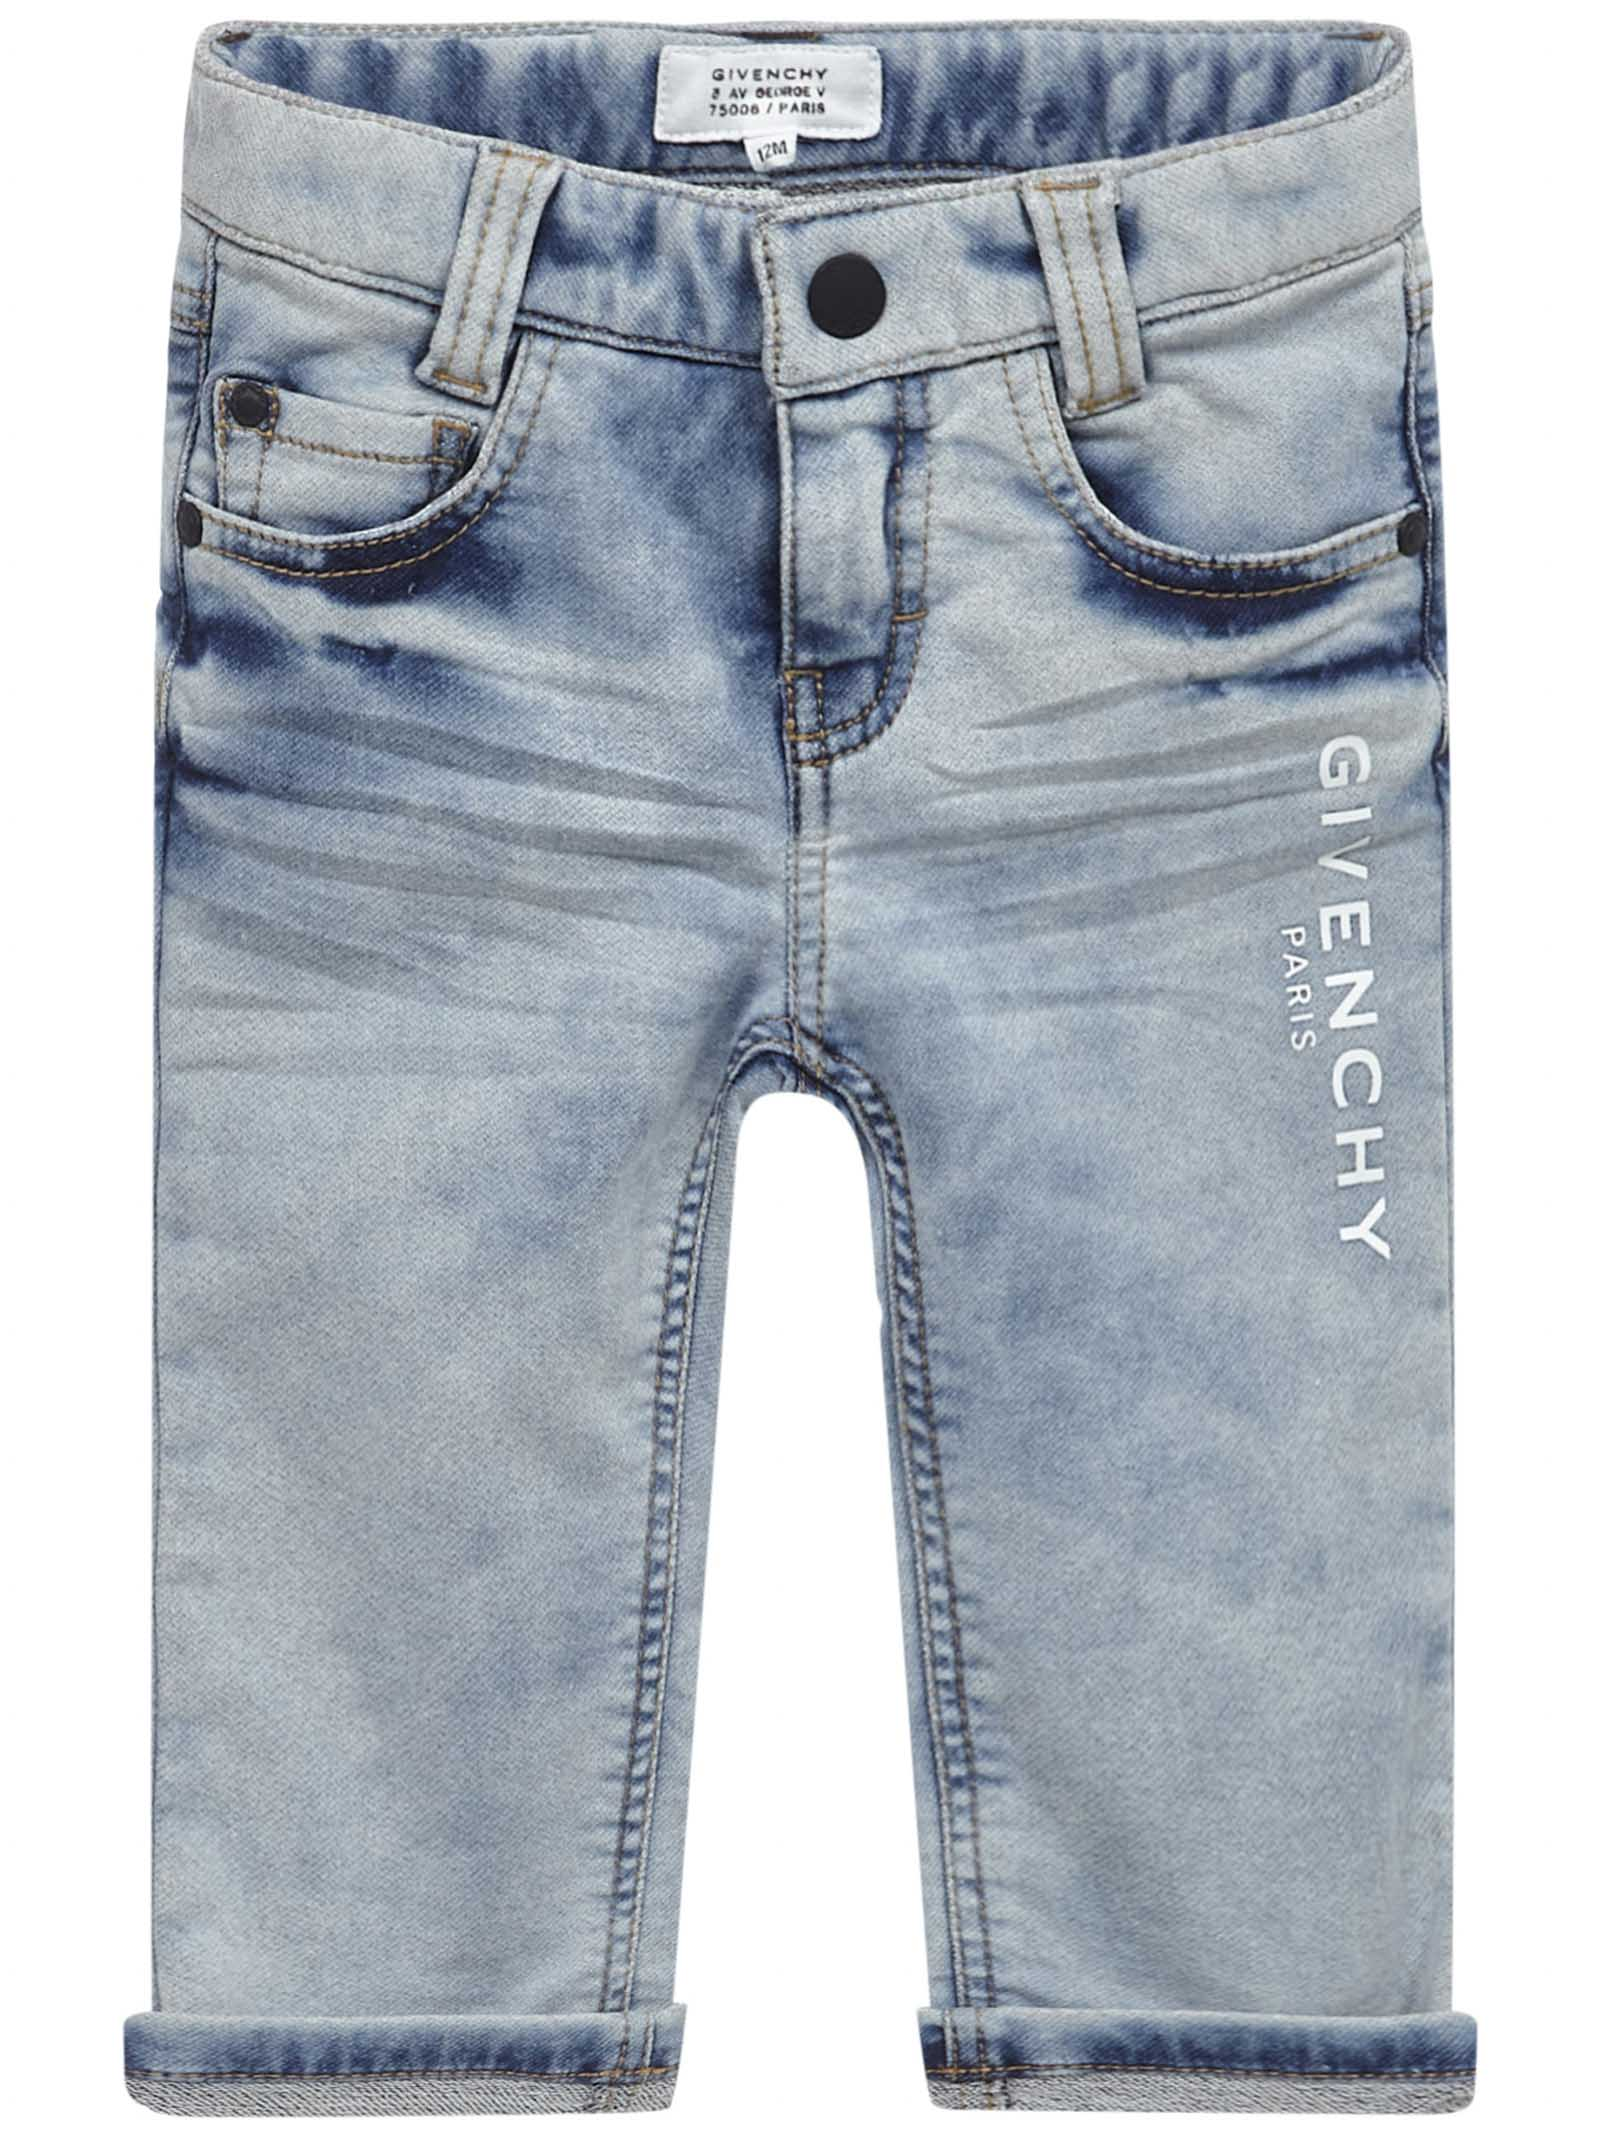 Givenchy Denims KIDS JEANS